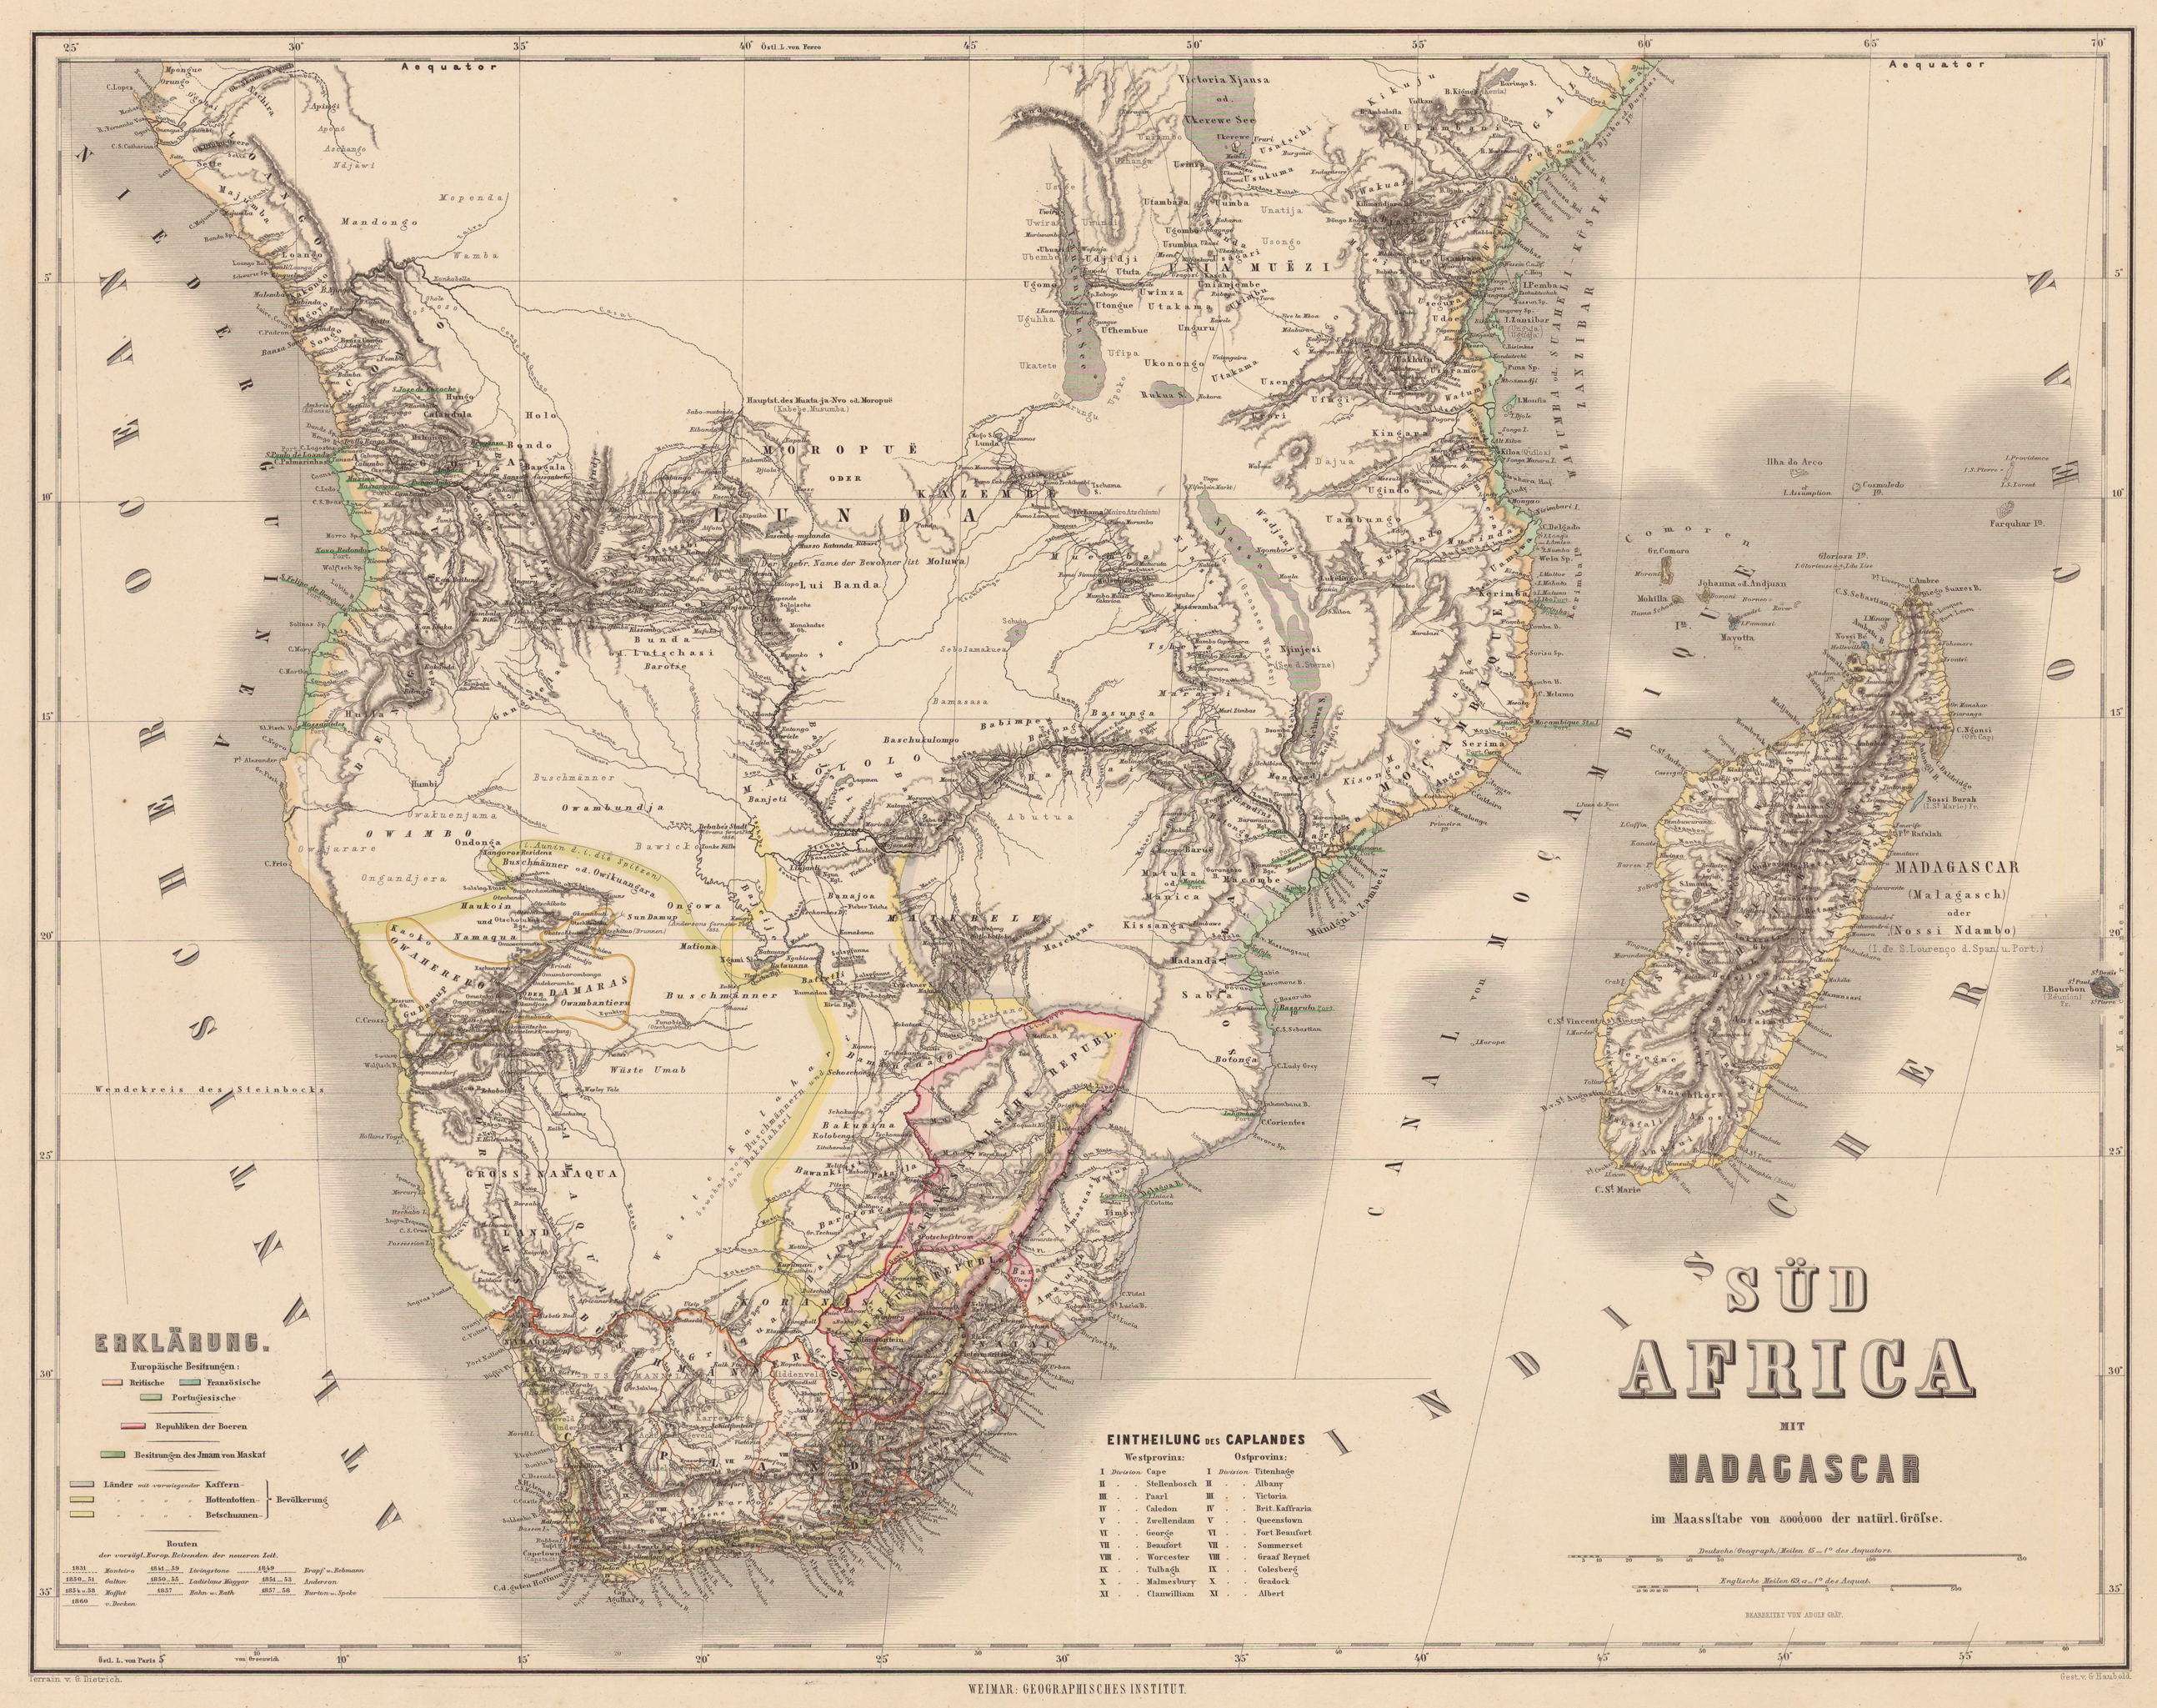 Untitled Doent on show me the map of africa, legal map of africa, mountain ranges in africa, interactive physical map of africa, landform map of africa, topological map of africa, blank map of africa, physiological map of africa, ethnographic map of africa, detailed map of africa, full map of africa, geographic features of africa, geography of africa, climate map of africa, ecological map of africa, territorial map of africa, labeled map of africa, transportation map of africa, geographical egypt, drakensburg mountains on map of africa,